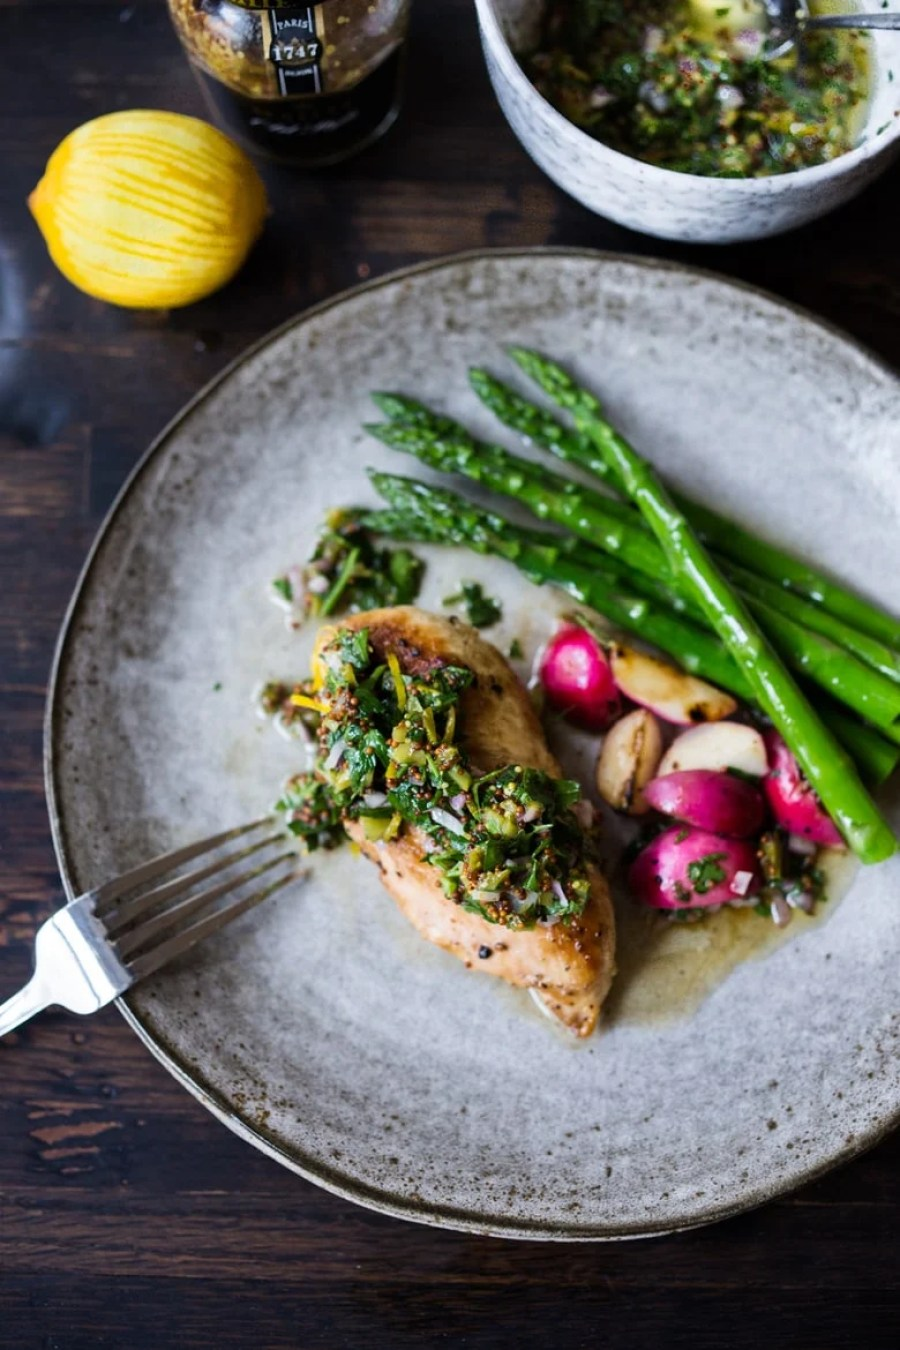 Skillet Chicken with AMAZING Mustard Seed Relish! Fast, healthy weeknight meal full of FLAVOR! | www.feastingathome.com | #flavorheroes #maille